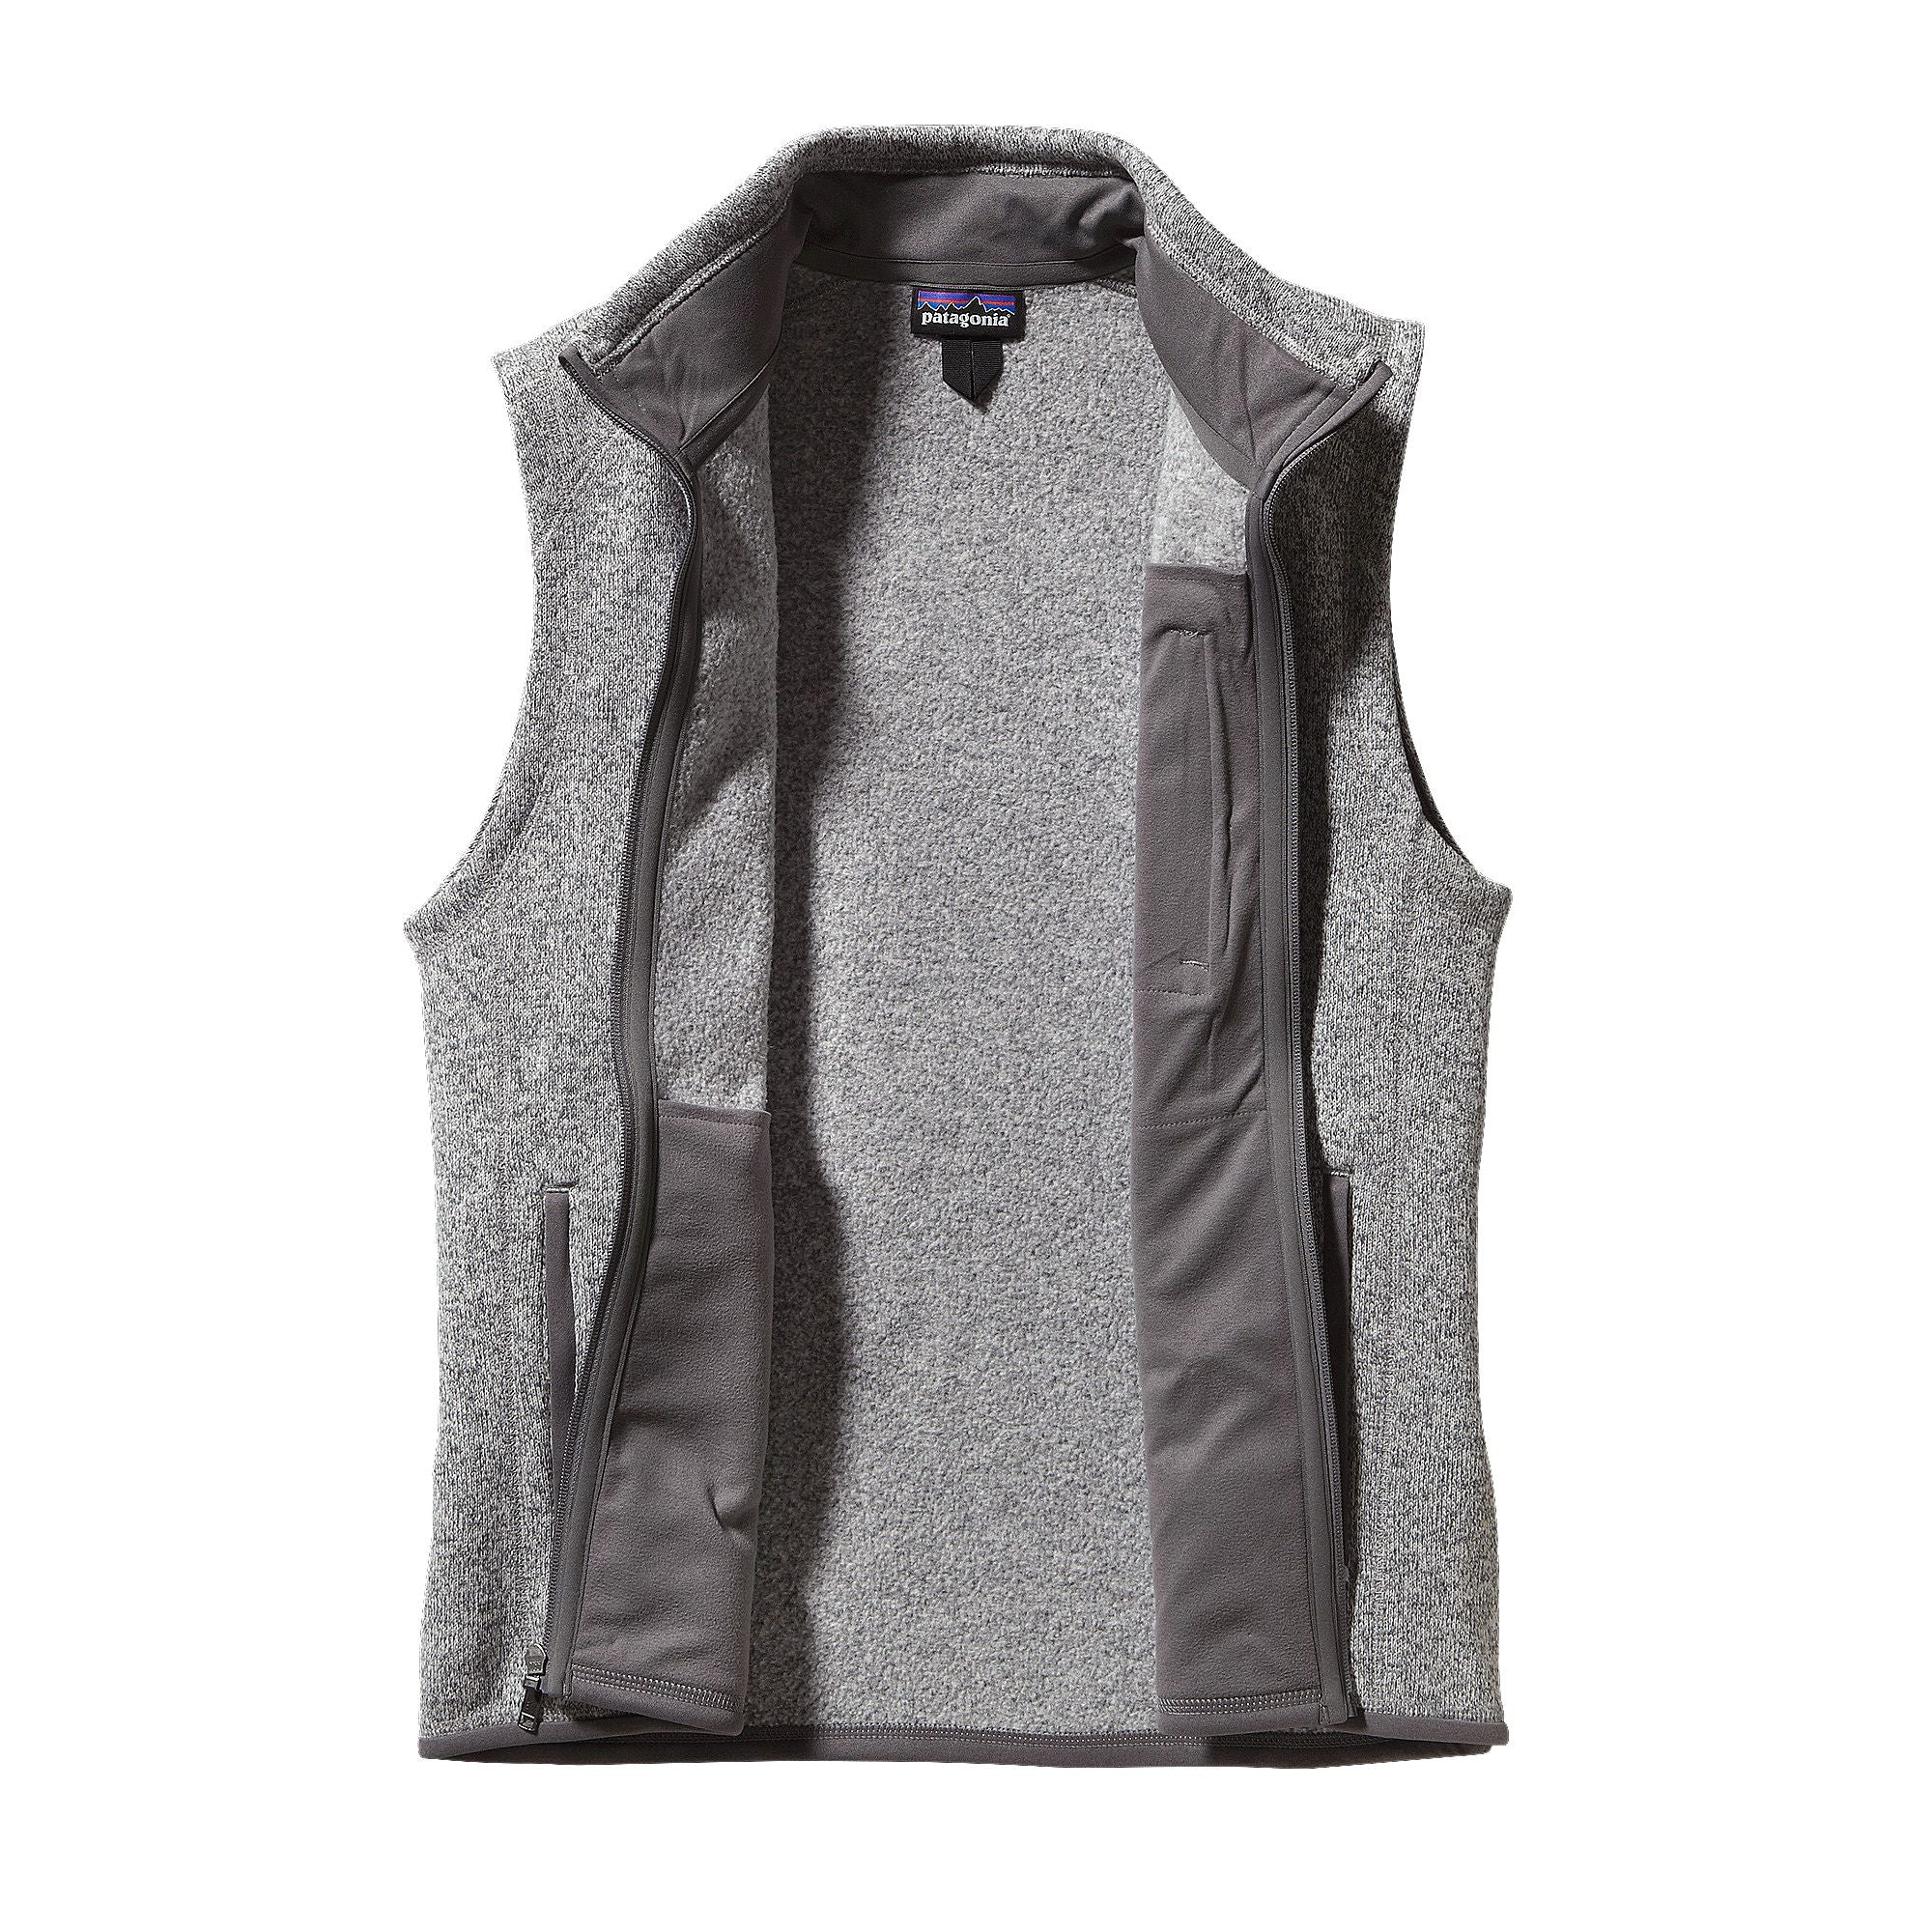 2eaf38f83339bf Patagonia Men s Better Sweater™ Fleece Vest - Stonewash - Sjøblad